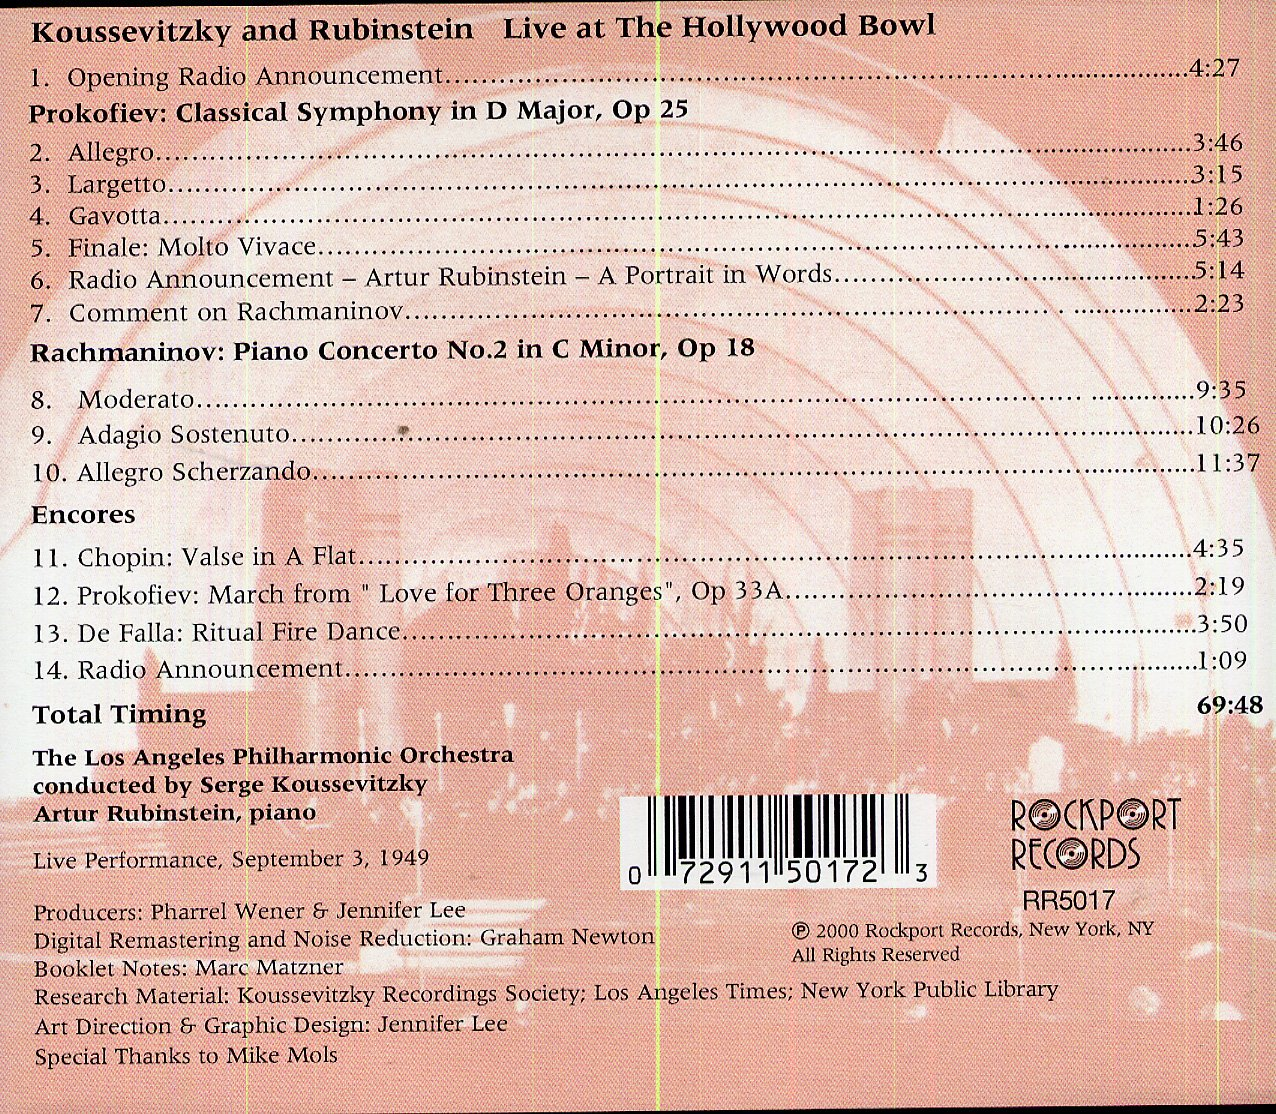 Koussevitzky and Rubinstein Live at the Hollywood Bowl (September 3, 1949) - Prokofiev Classical Symphony in D Major Op 25 / Rachmaninov: Piano Concerto No. 2 in C minor Op. 18 plus encores by Rockport